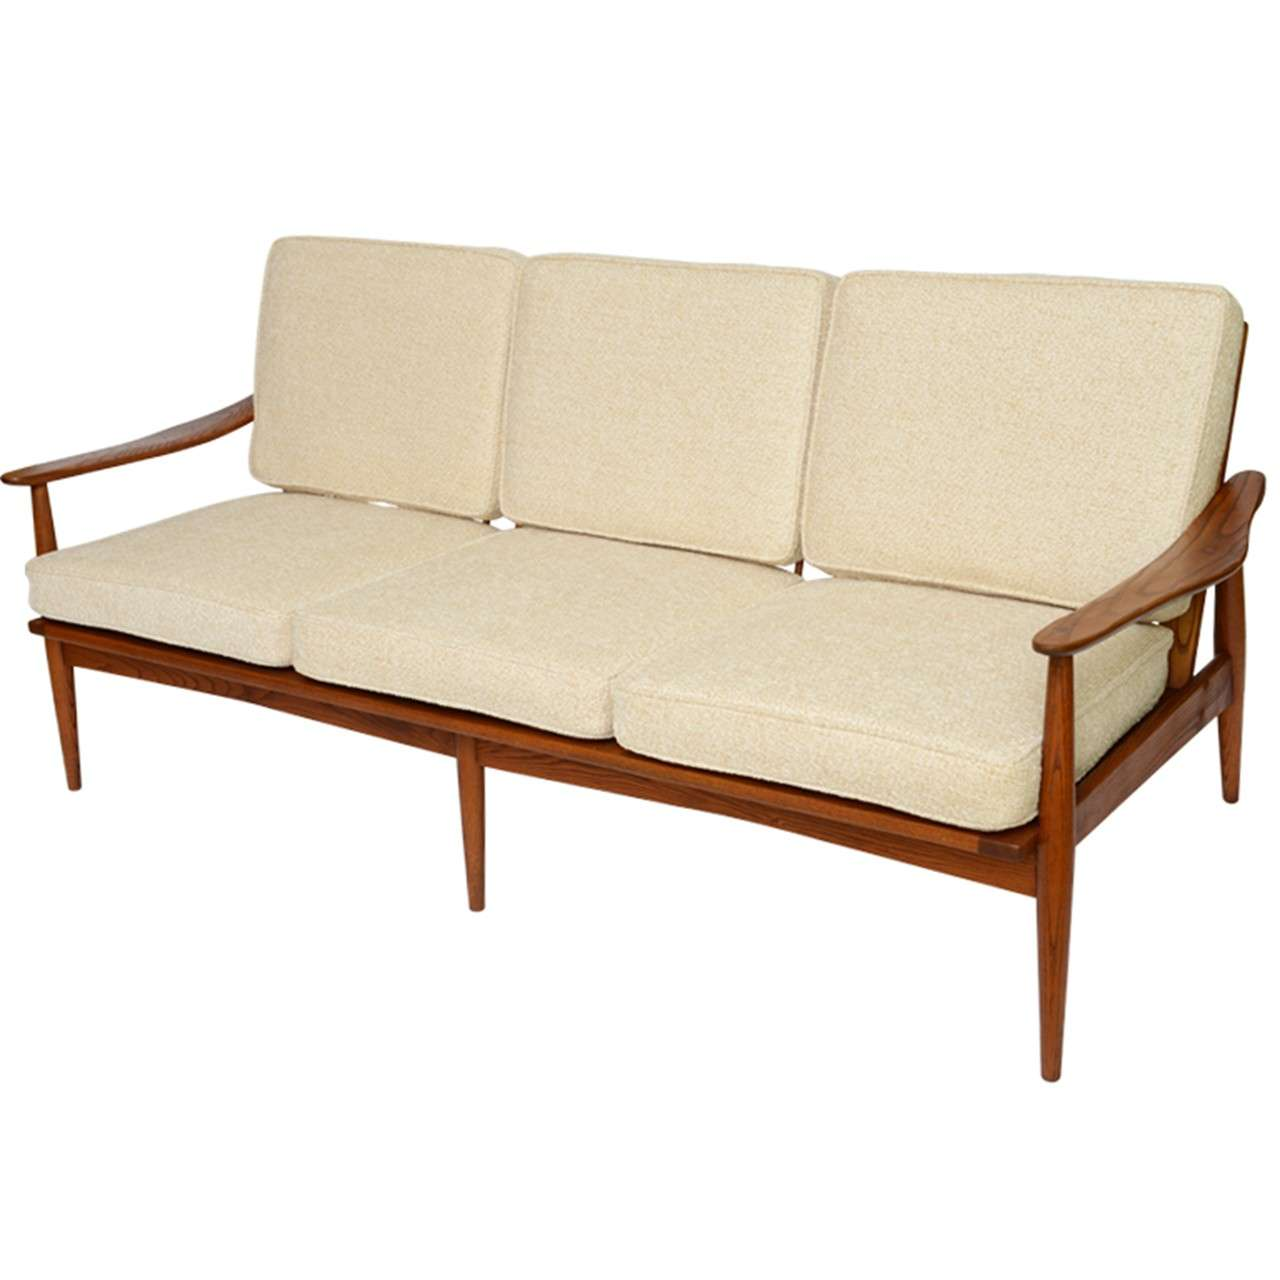 Danish 50s Spindle Back Wide Arm Three Seat Sofa At 1stdibs